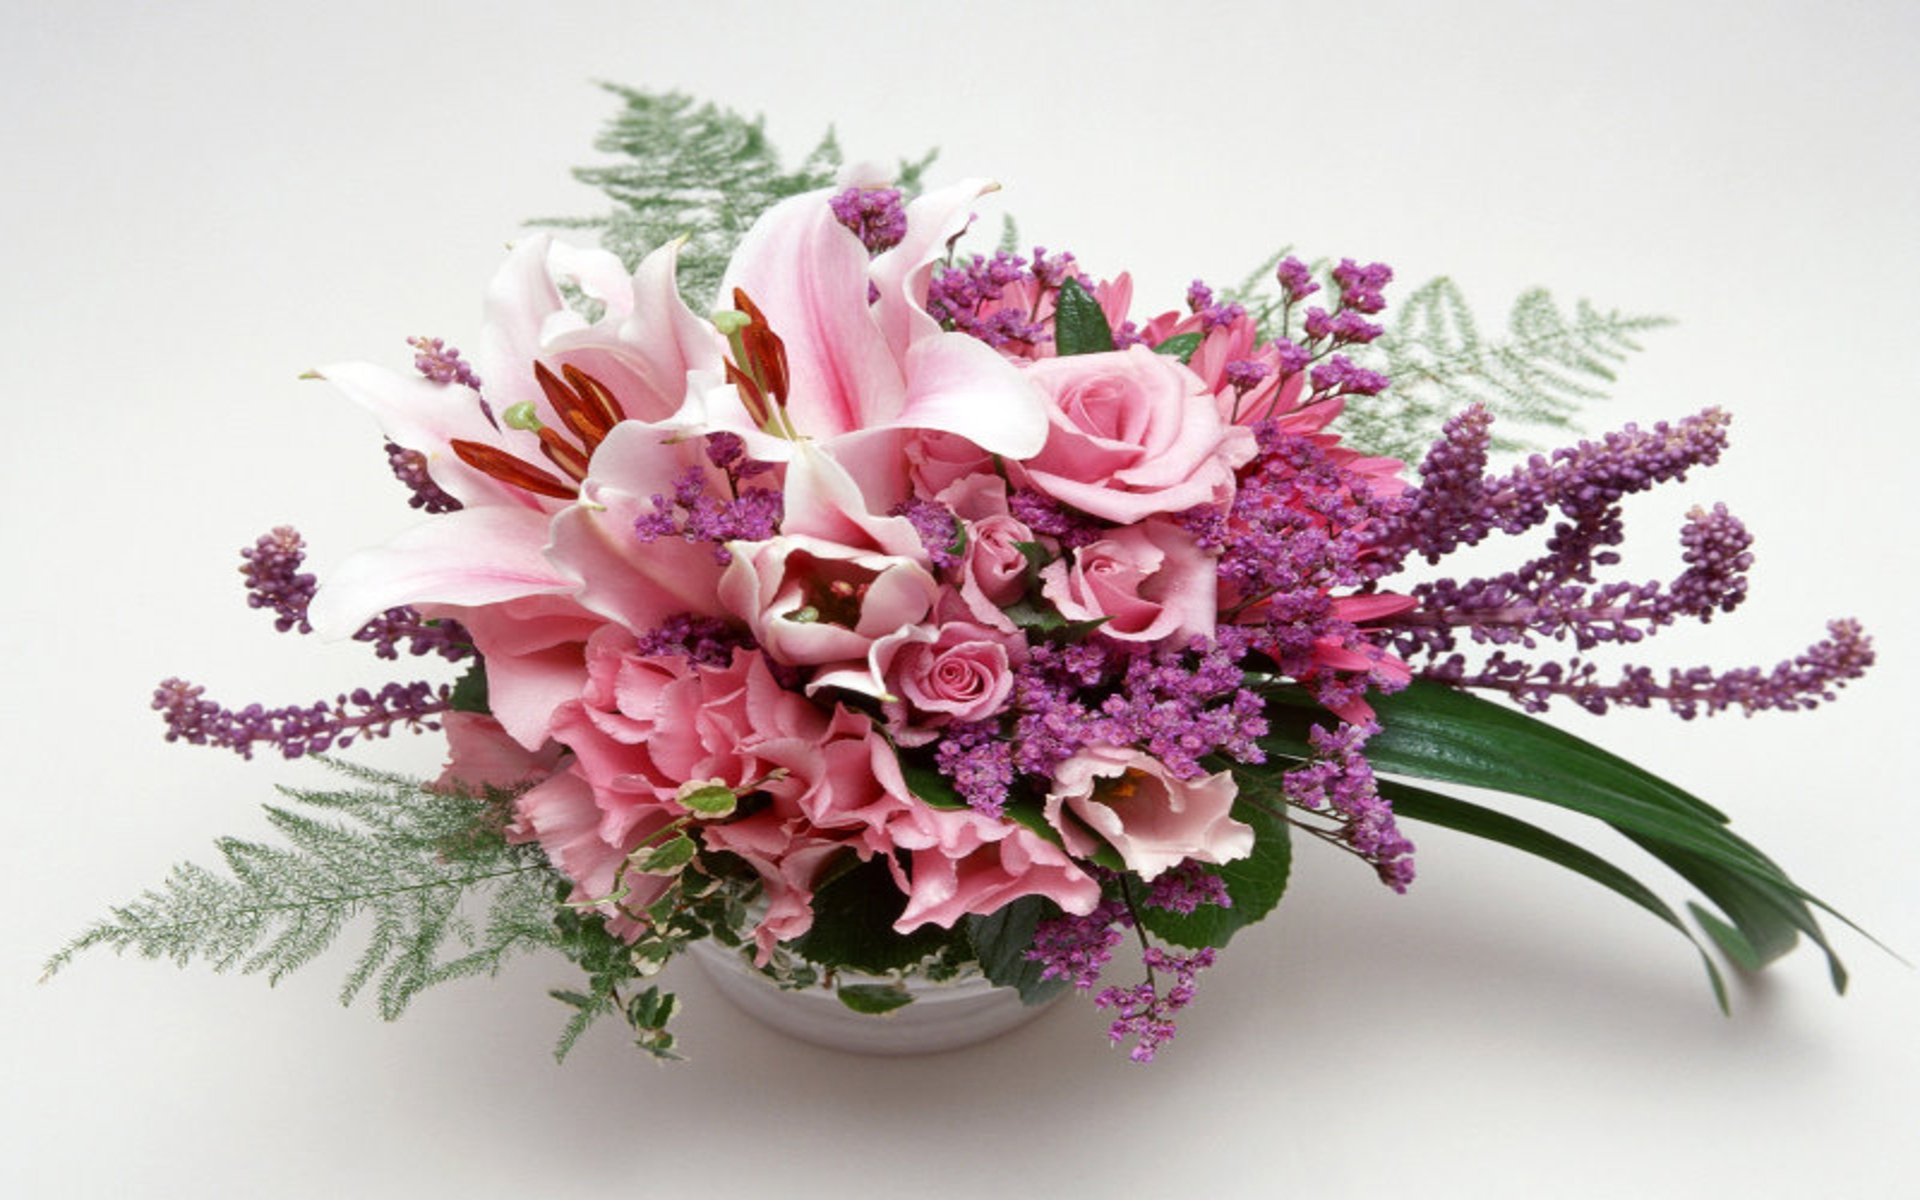 stunning flowers images new